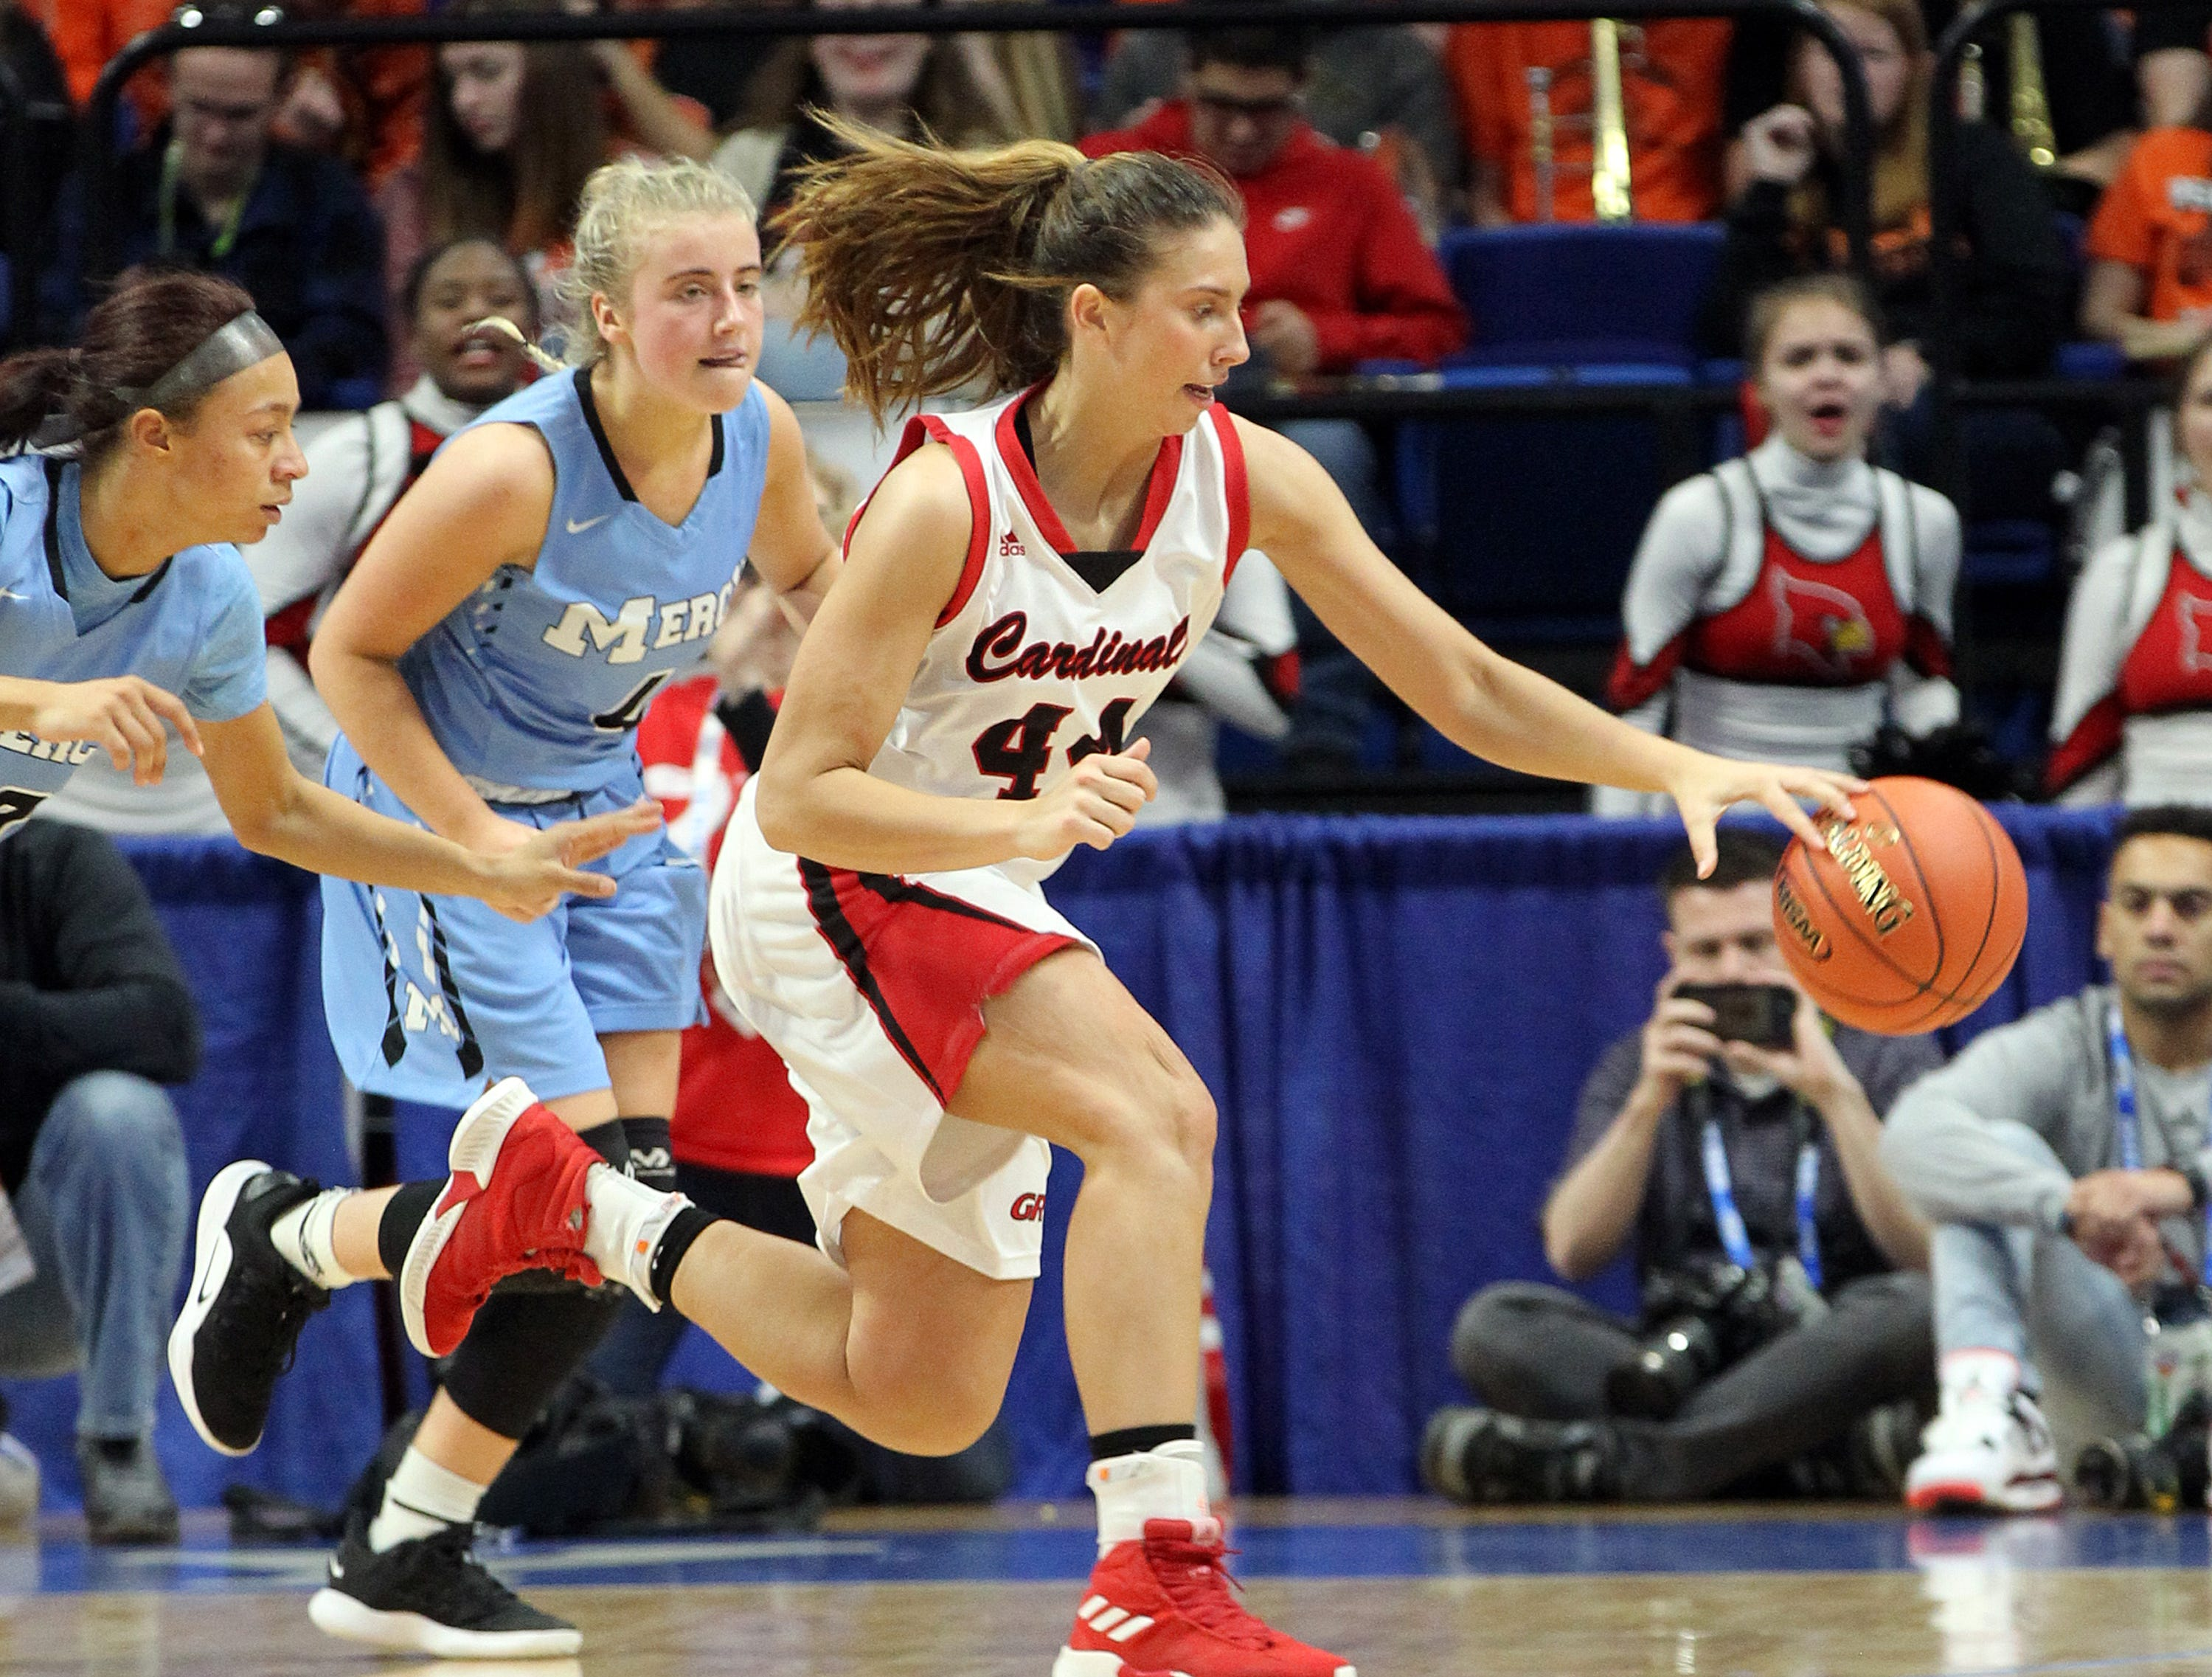 George Rogers Clark's Hayley Harrison (44) chases down the ball near Mercy's Hope Sivori in their opening round game at the KHSAA Girl's Sweet 16, Wednesday, March 13. George Rogers Clark won 65-64.